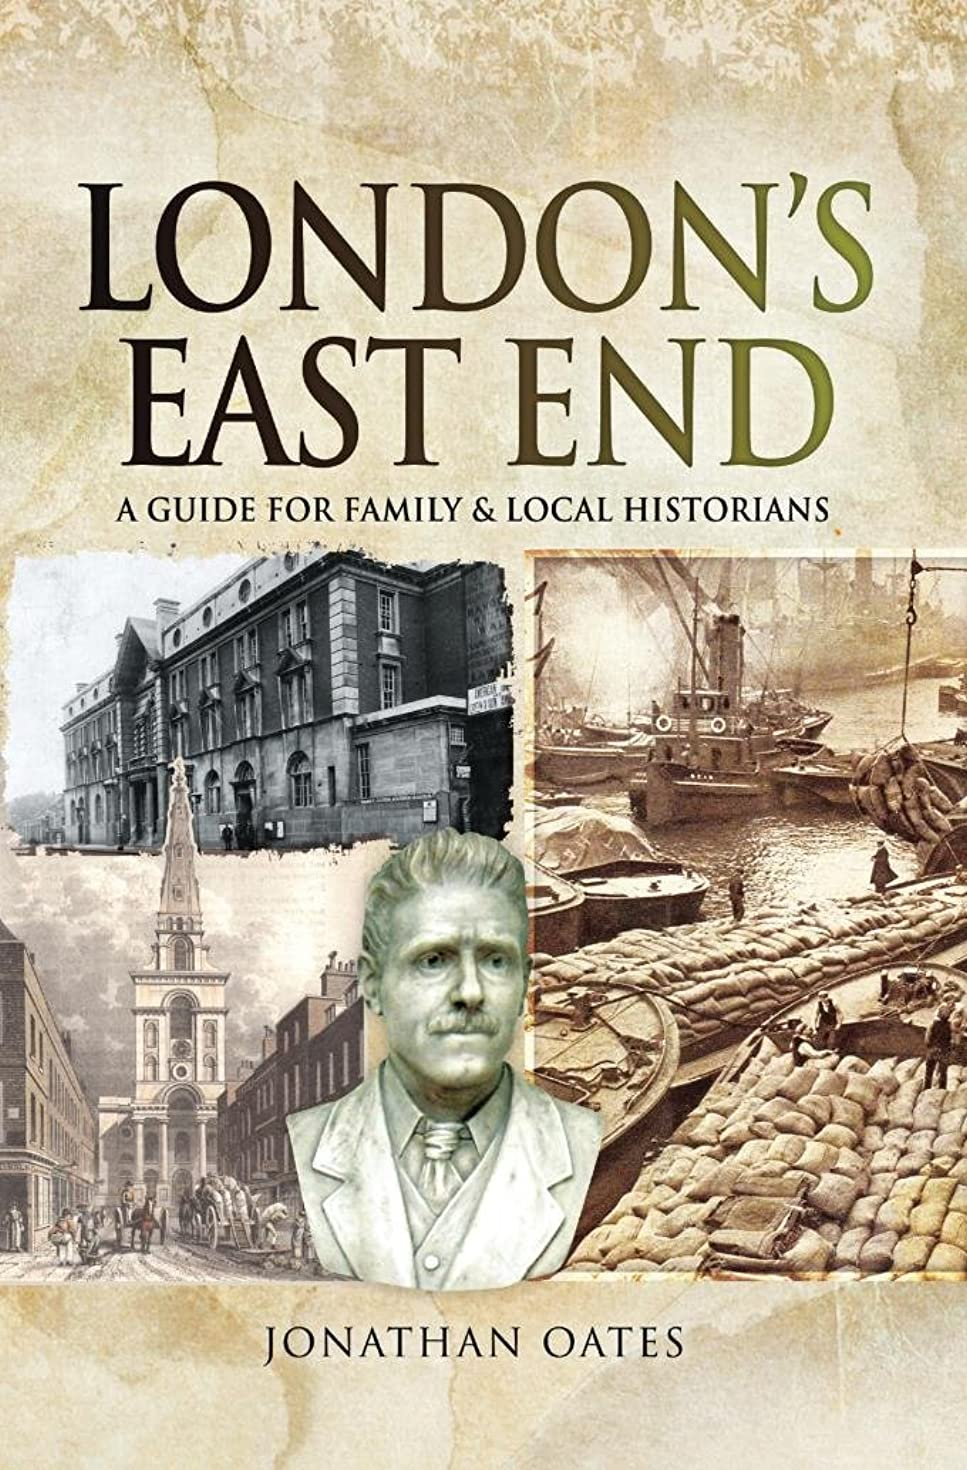 London's East End: A Guide for Family and Local Historians